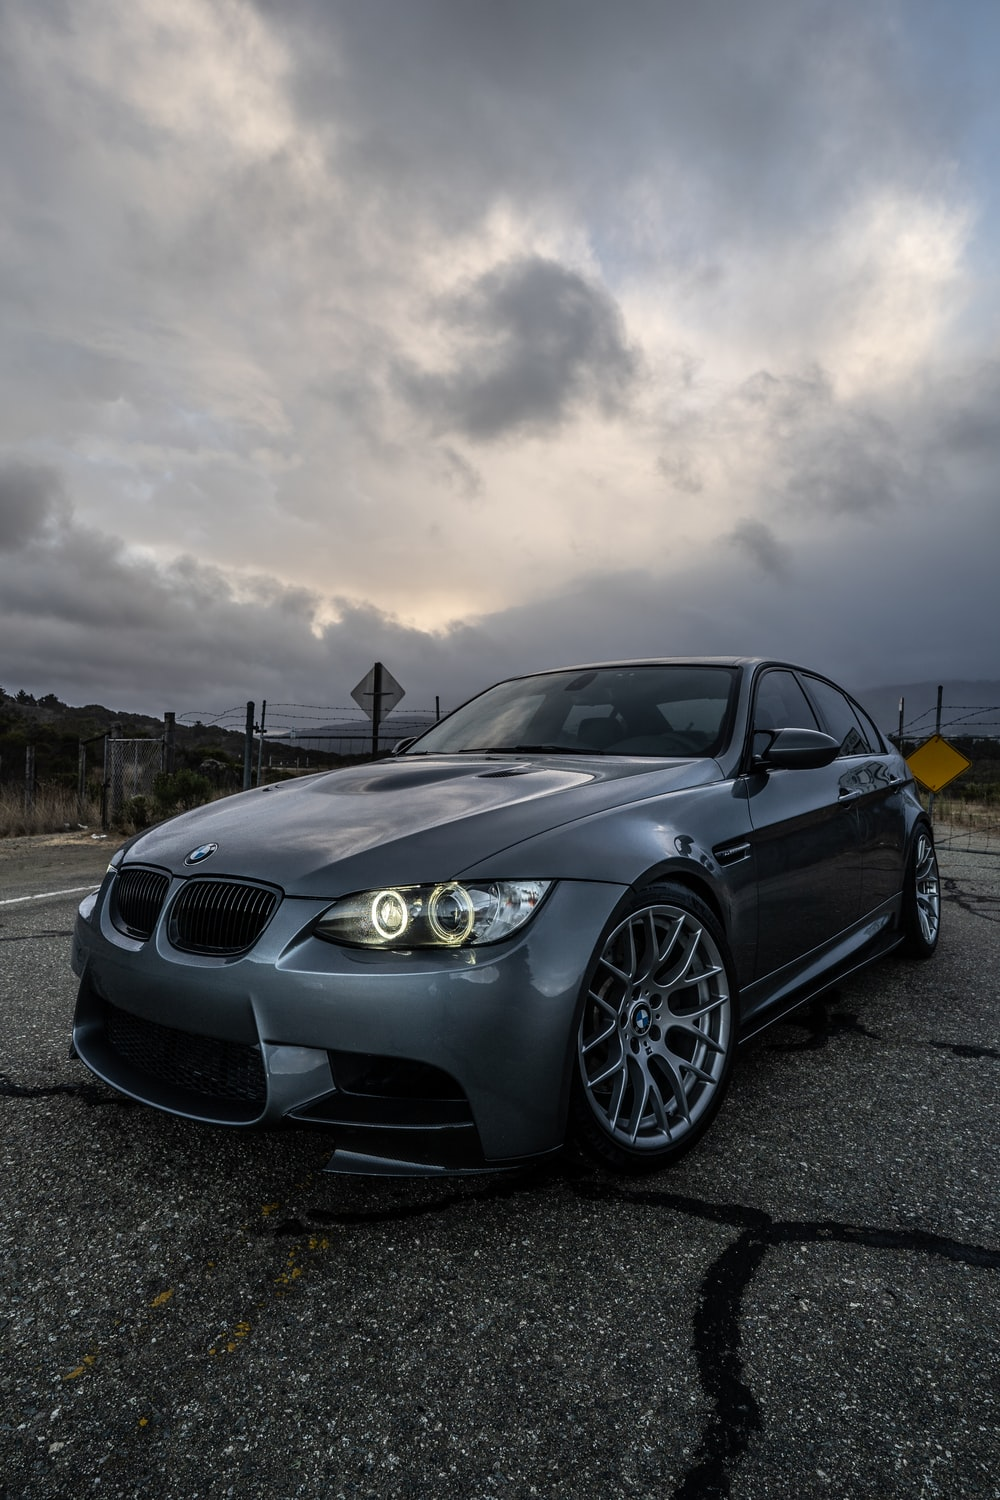 black bmw m 3 coupe on road under gray clouds